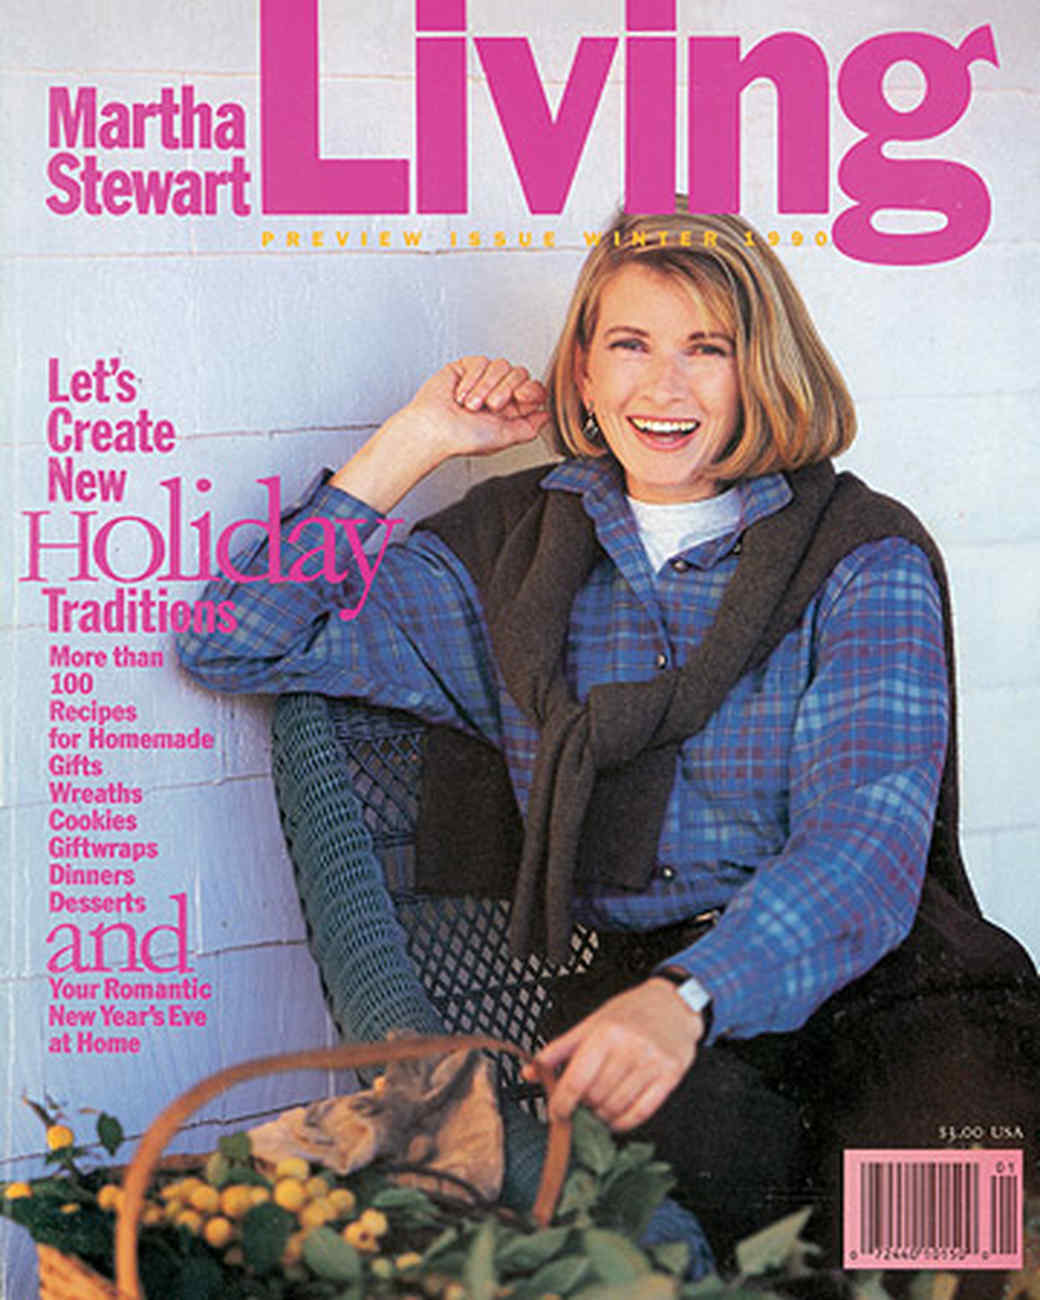 living_1990_first_preview_i.jpg